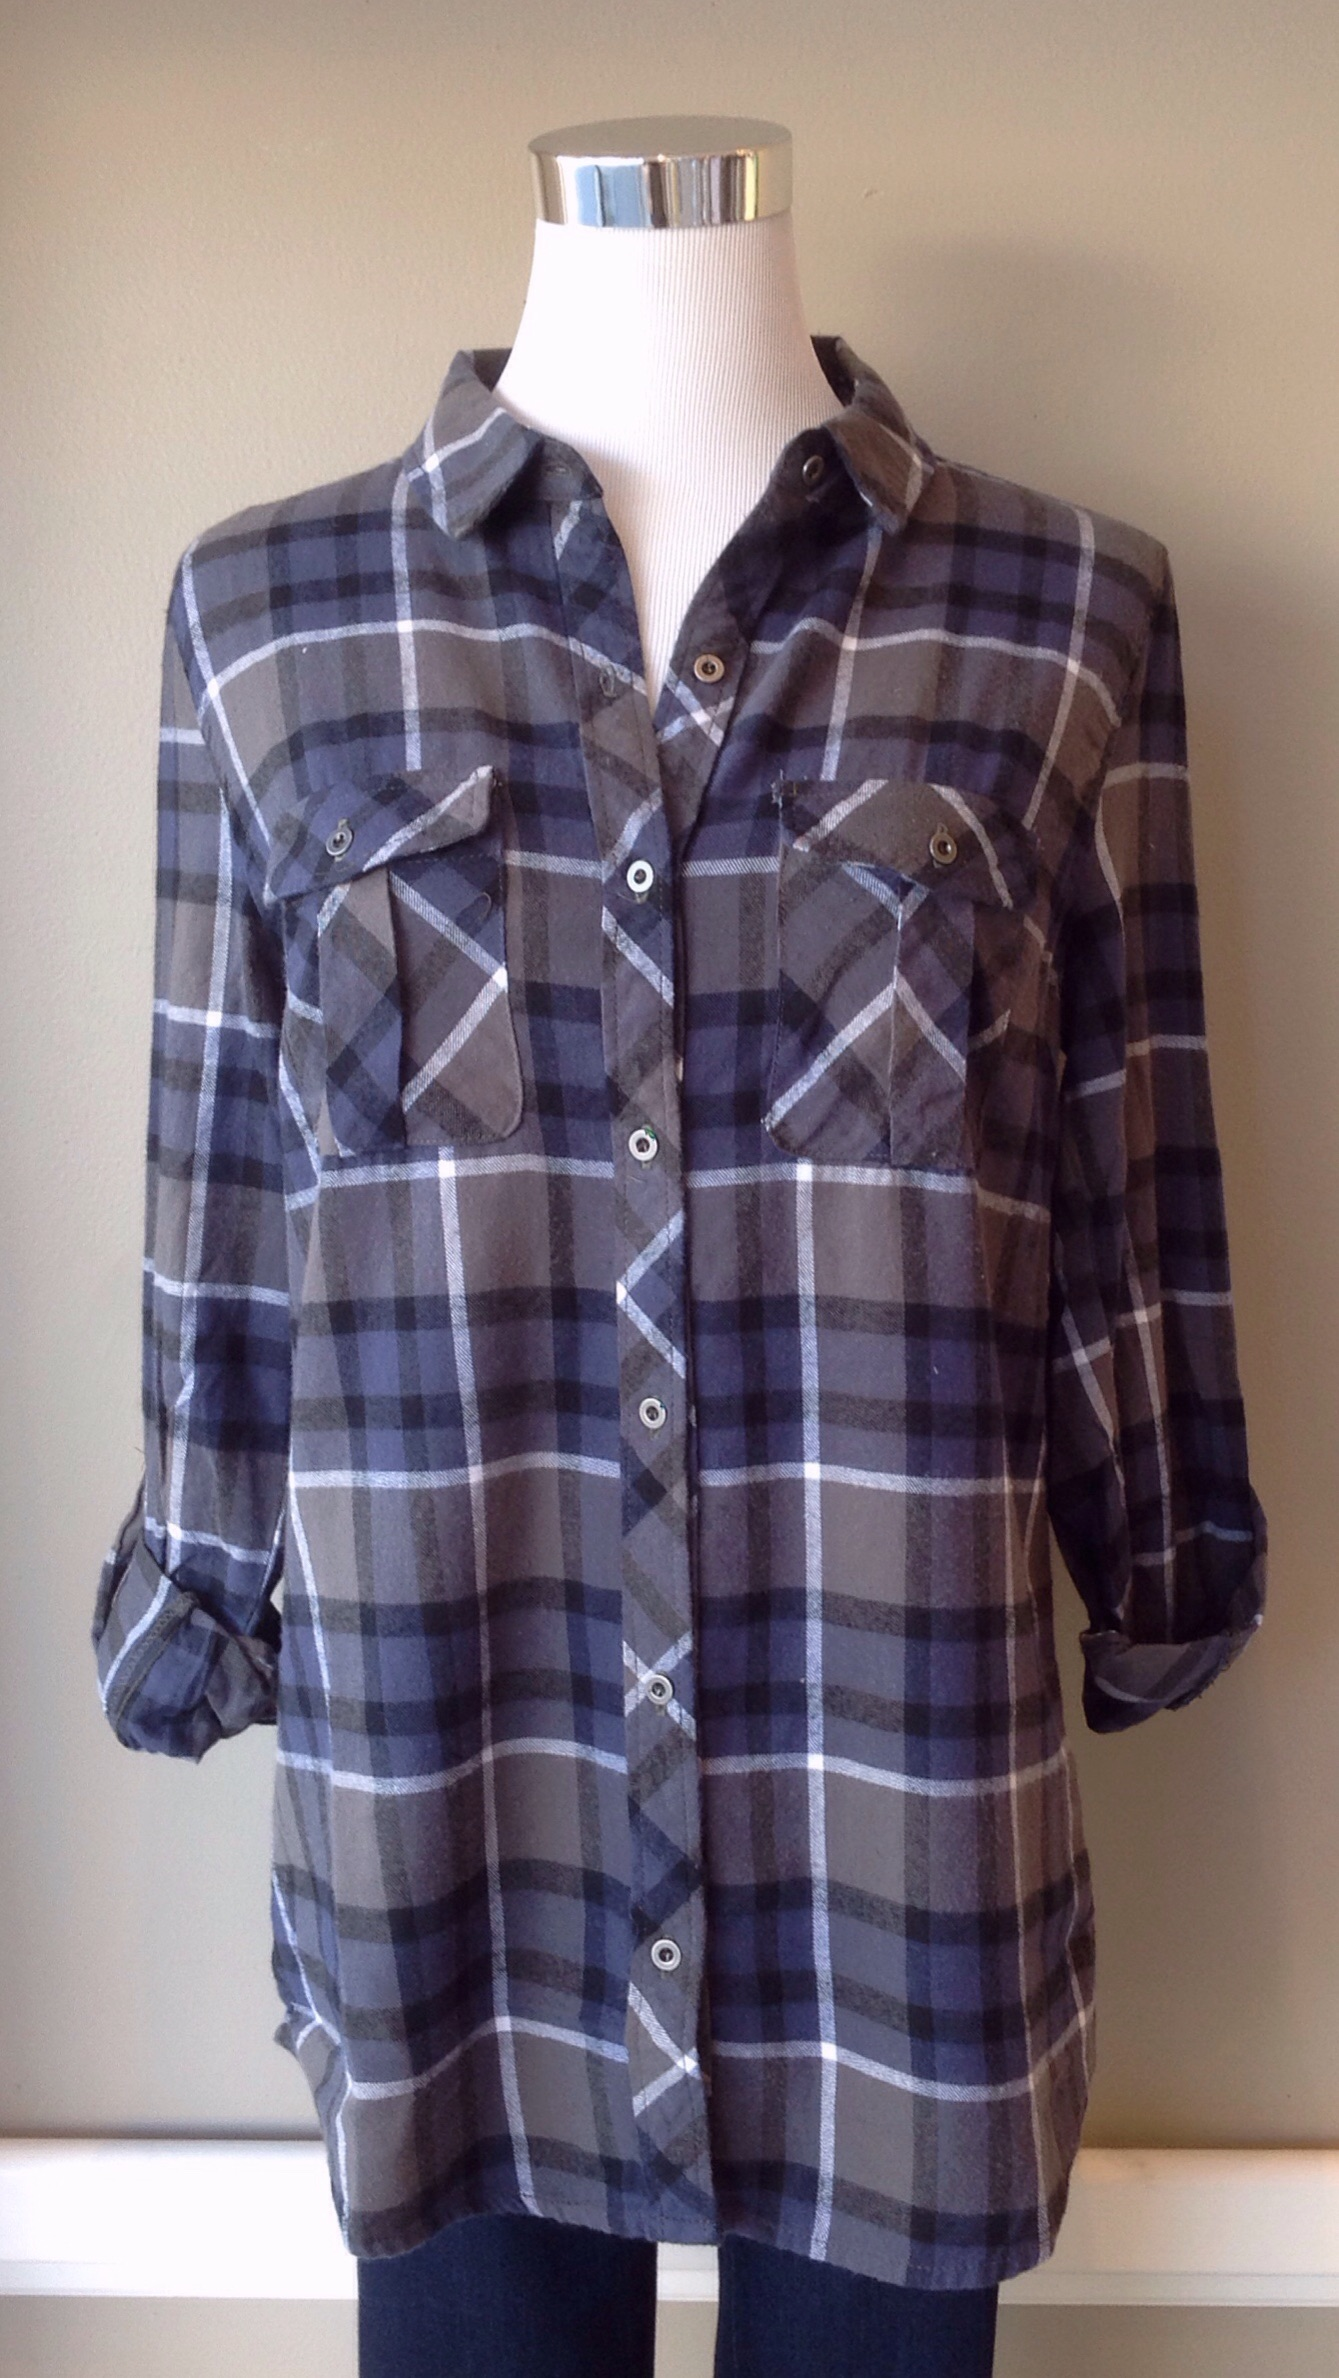 Cotton navy and grey plaid button-down with roll tab sleeves, $35